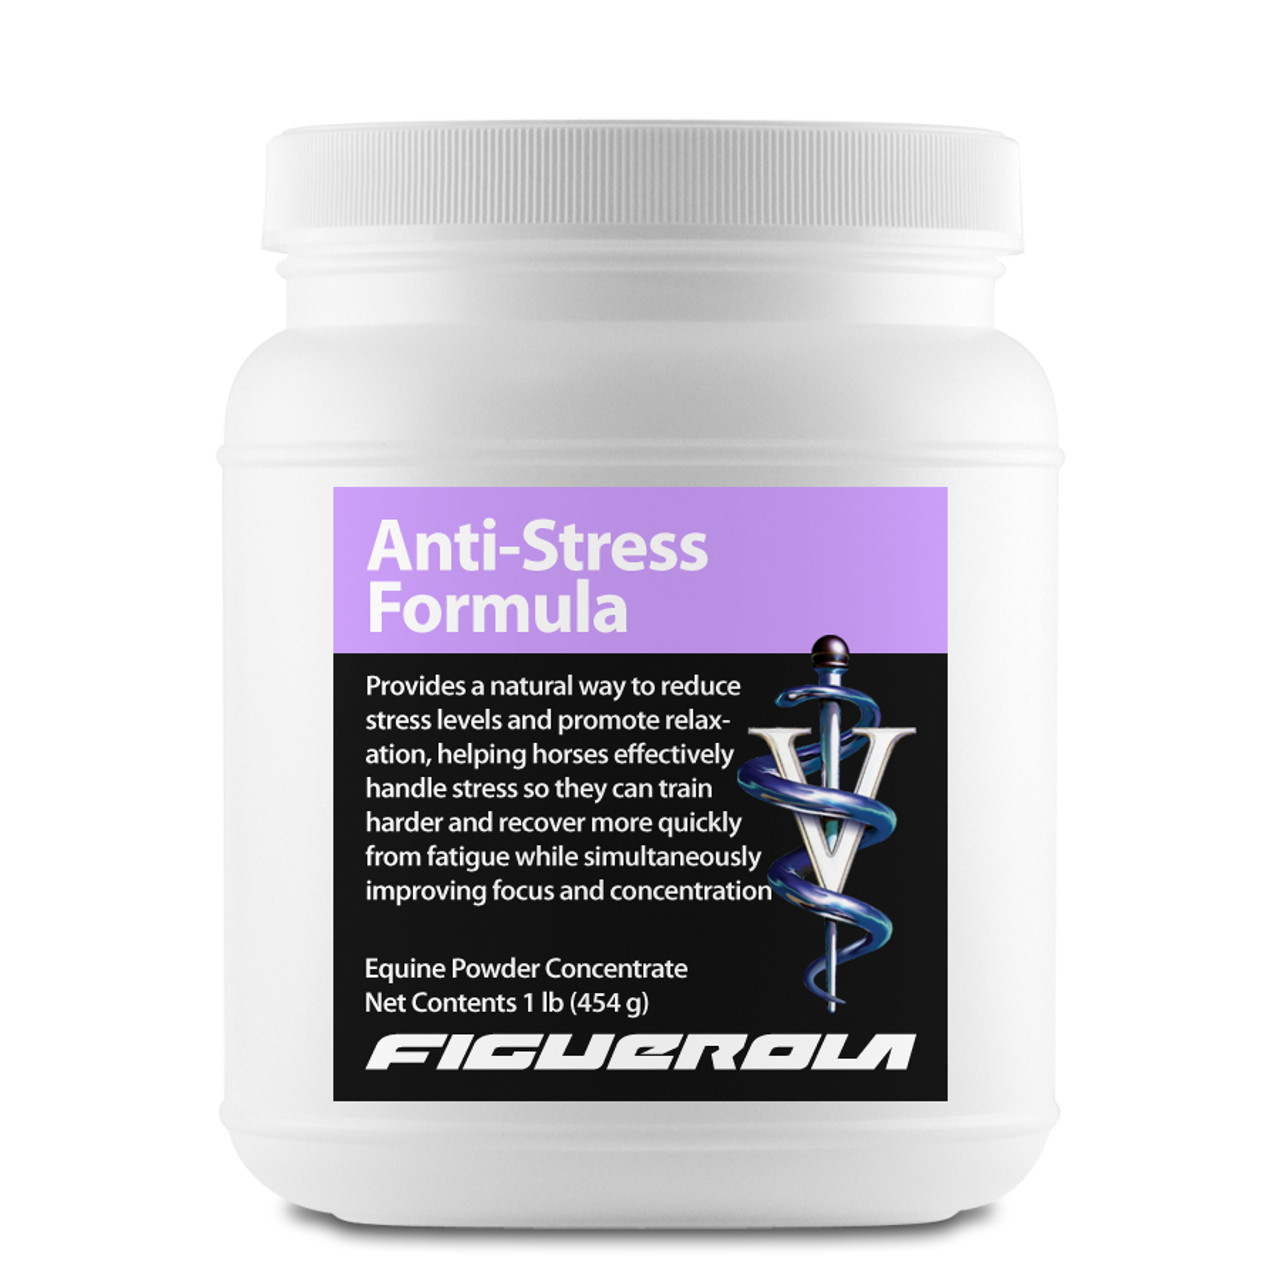 Anti-Stress Formula Equine